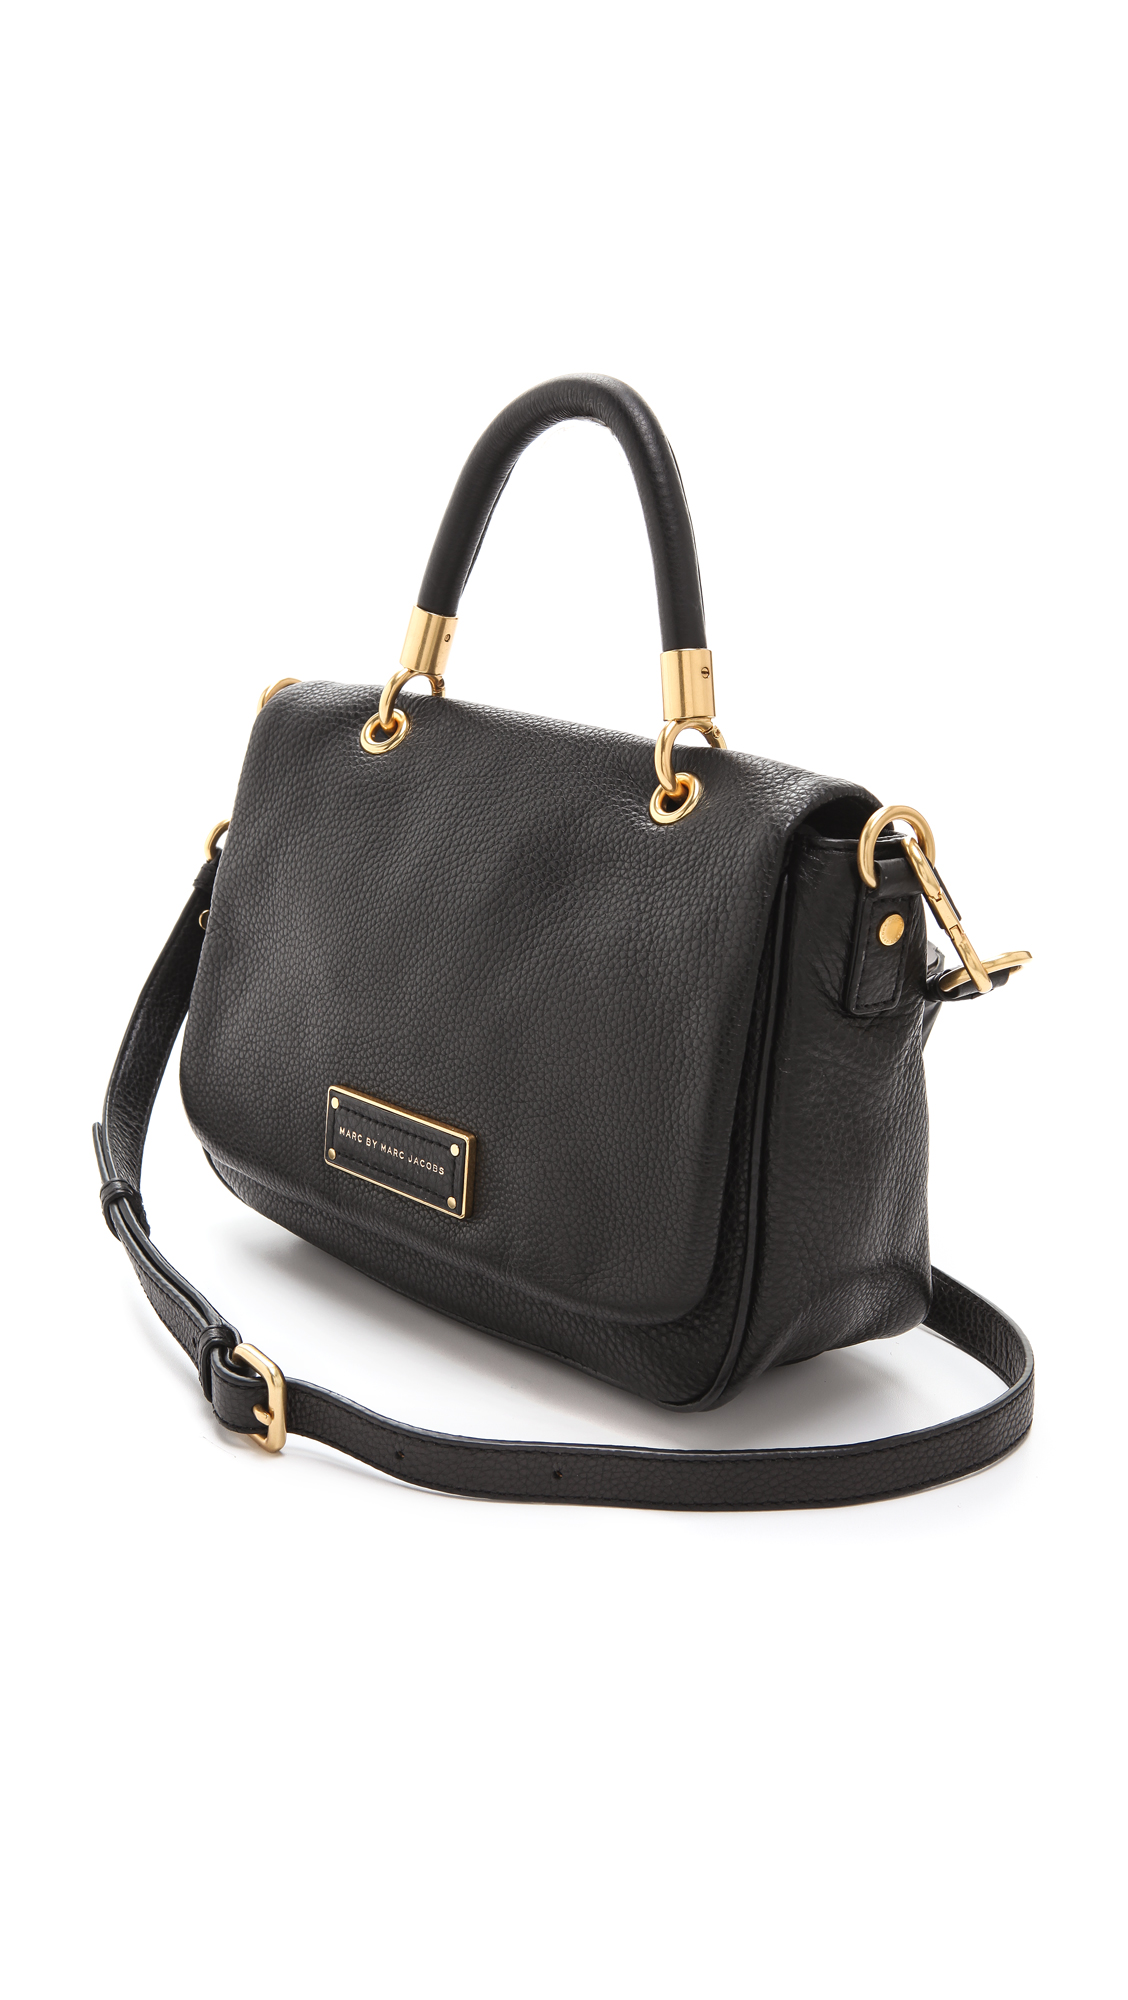 26002dbf4902 Marc by Marc Jacobs Too Hot To Handle Small Top Handle Bag